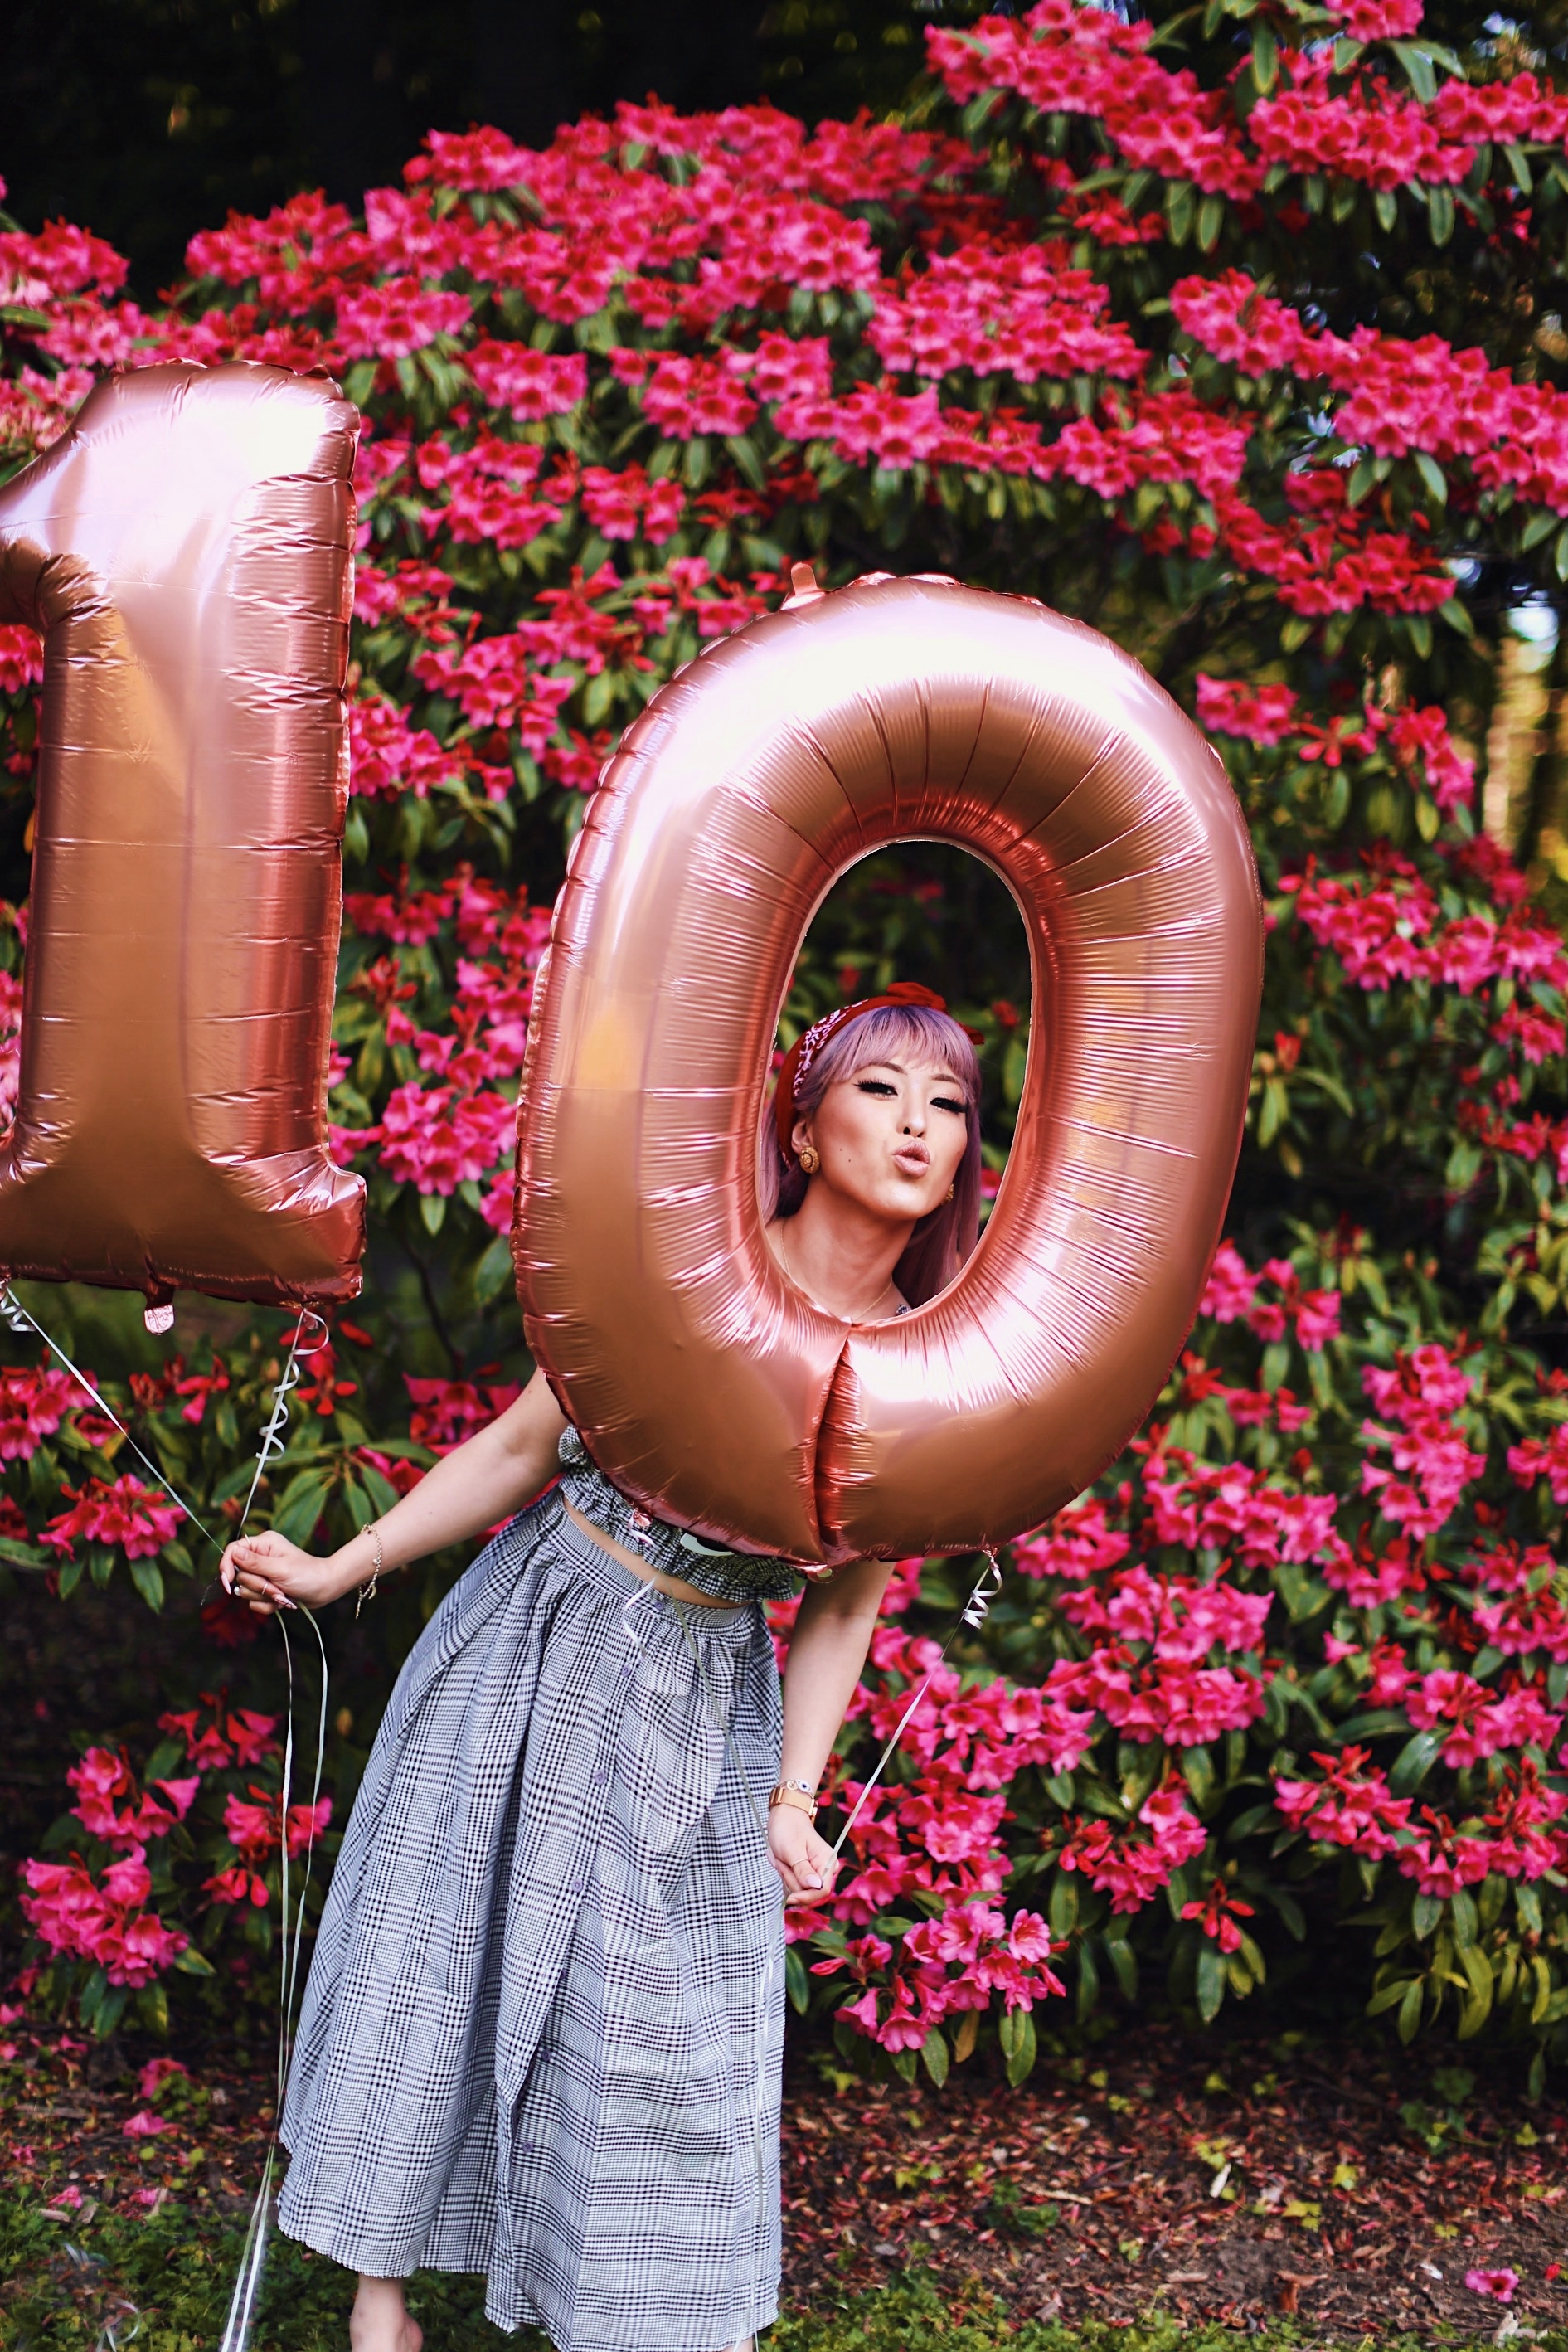 Aika's Love Closet-Seattle Style Life Style Blogger-Japanese-10 Year Anniversary-living in America-what I've learned from Living Abroad-life lessons-pink hair-zero uv heart sunglasses-rose gold balloons-smile 22